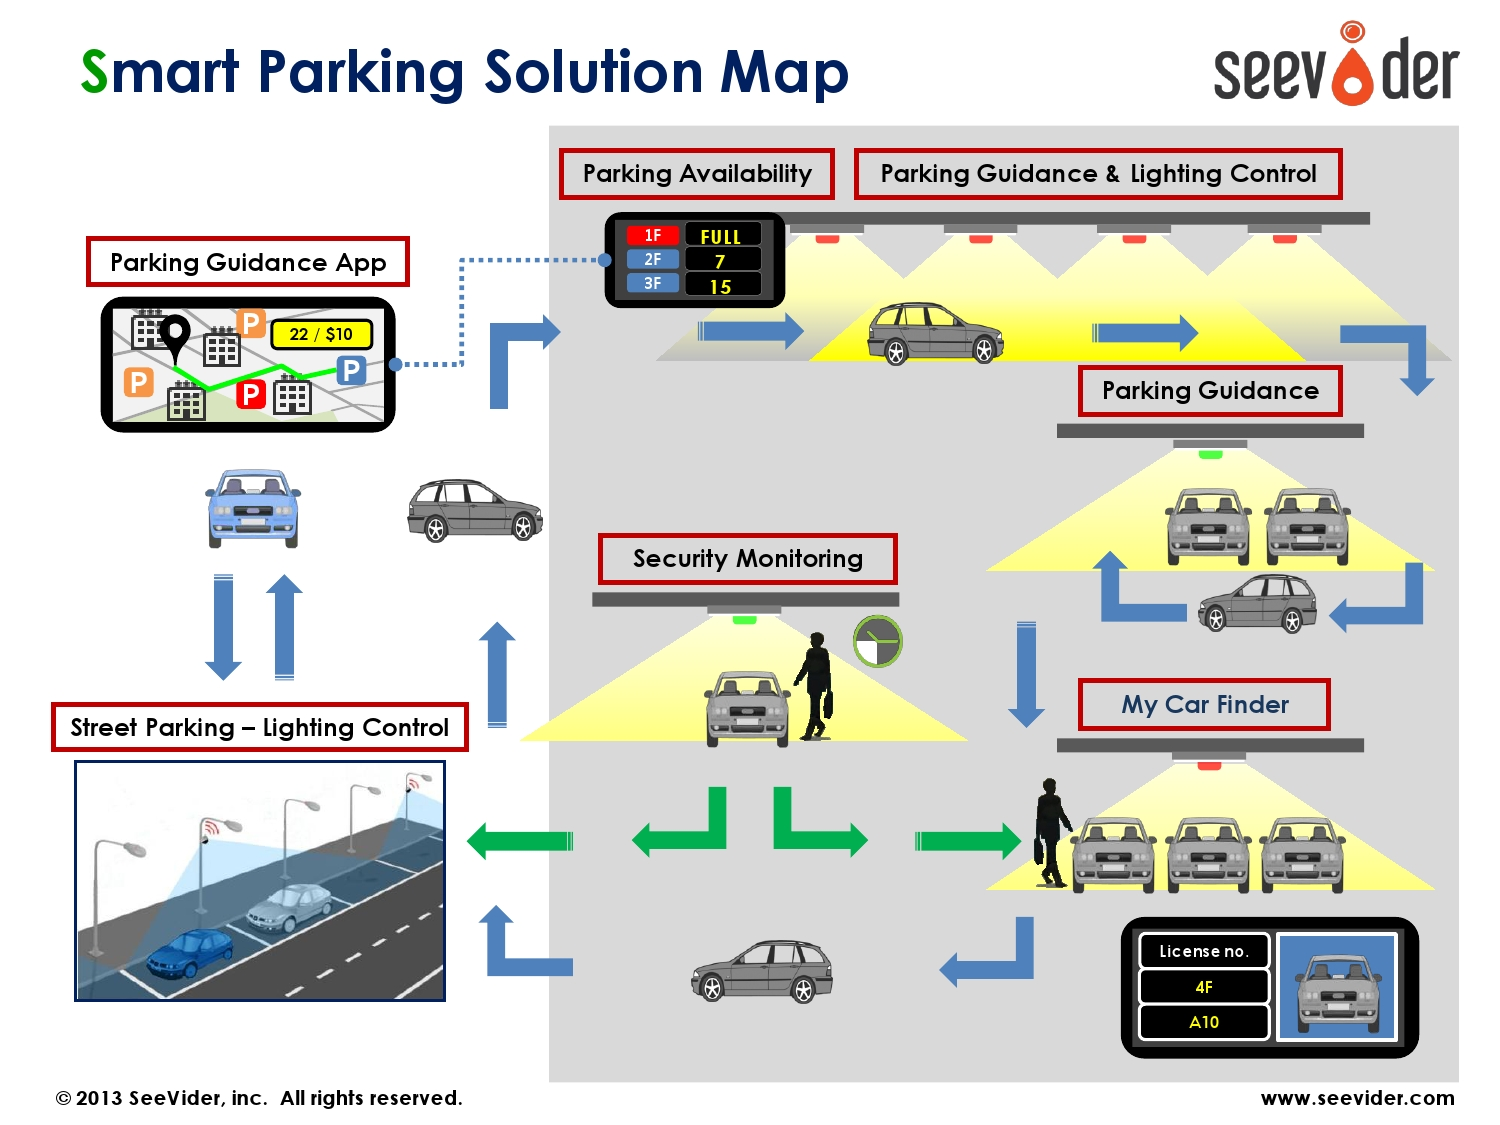 All In One Solution For Parking Guidance Information